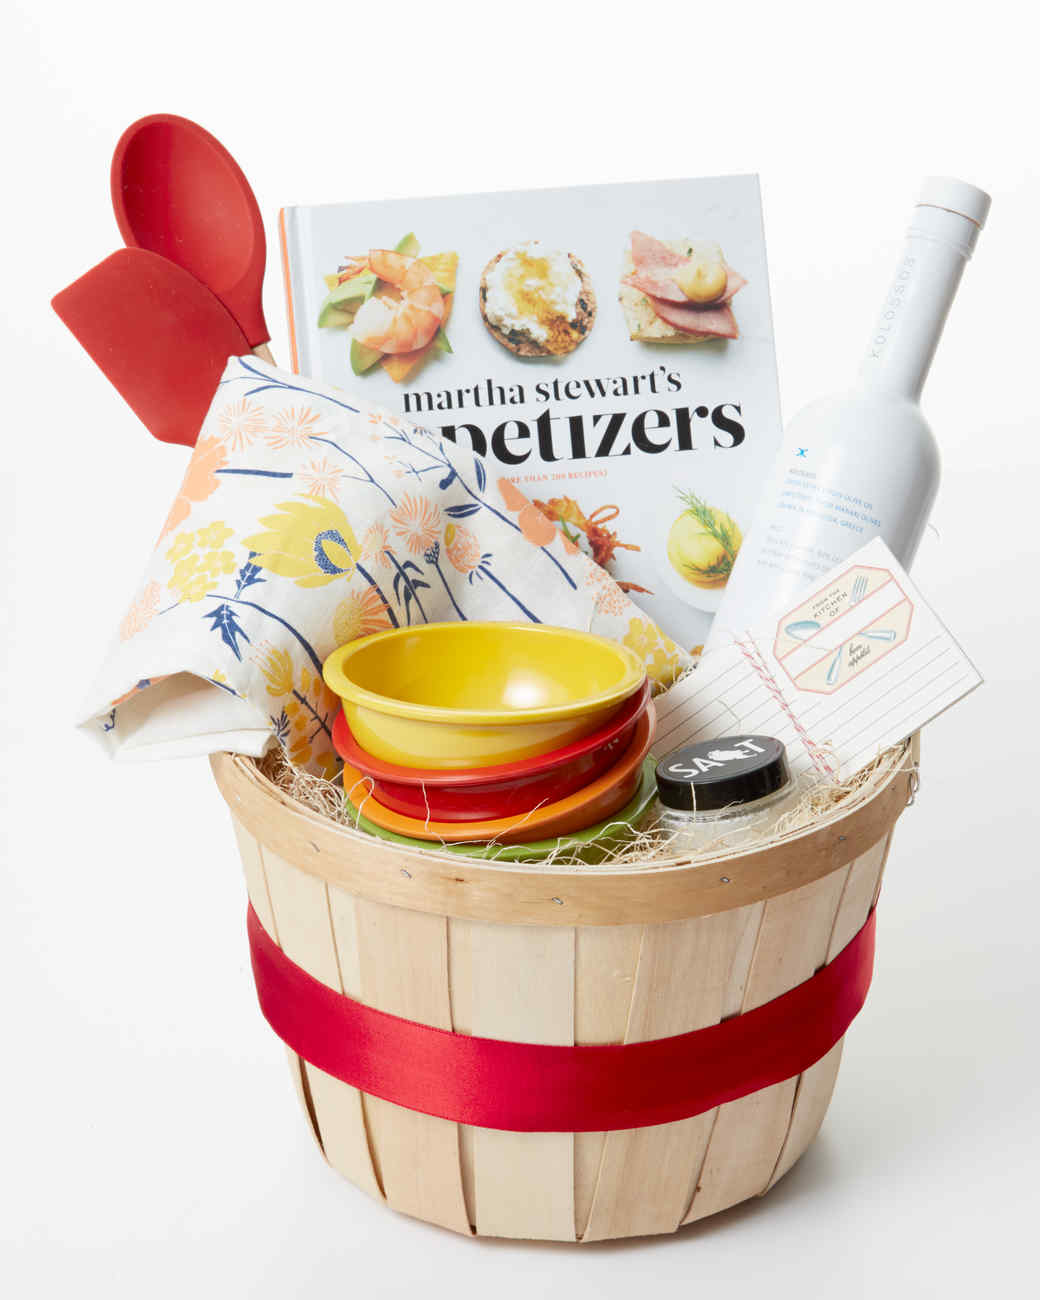 7 handy easter basket ideas for the master chef martha stewart 7 handy easter basket ideas for the master chef negle Choice Image